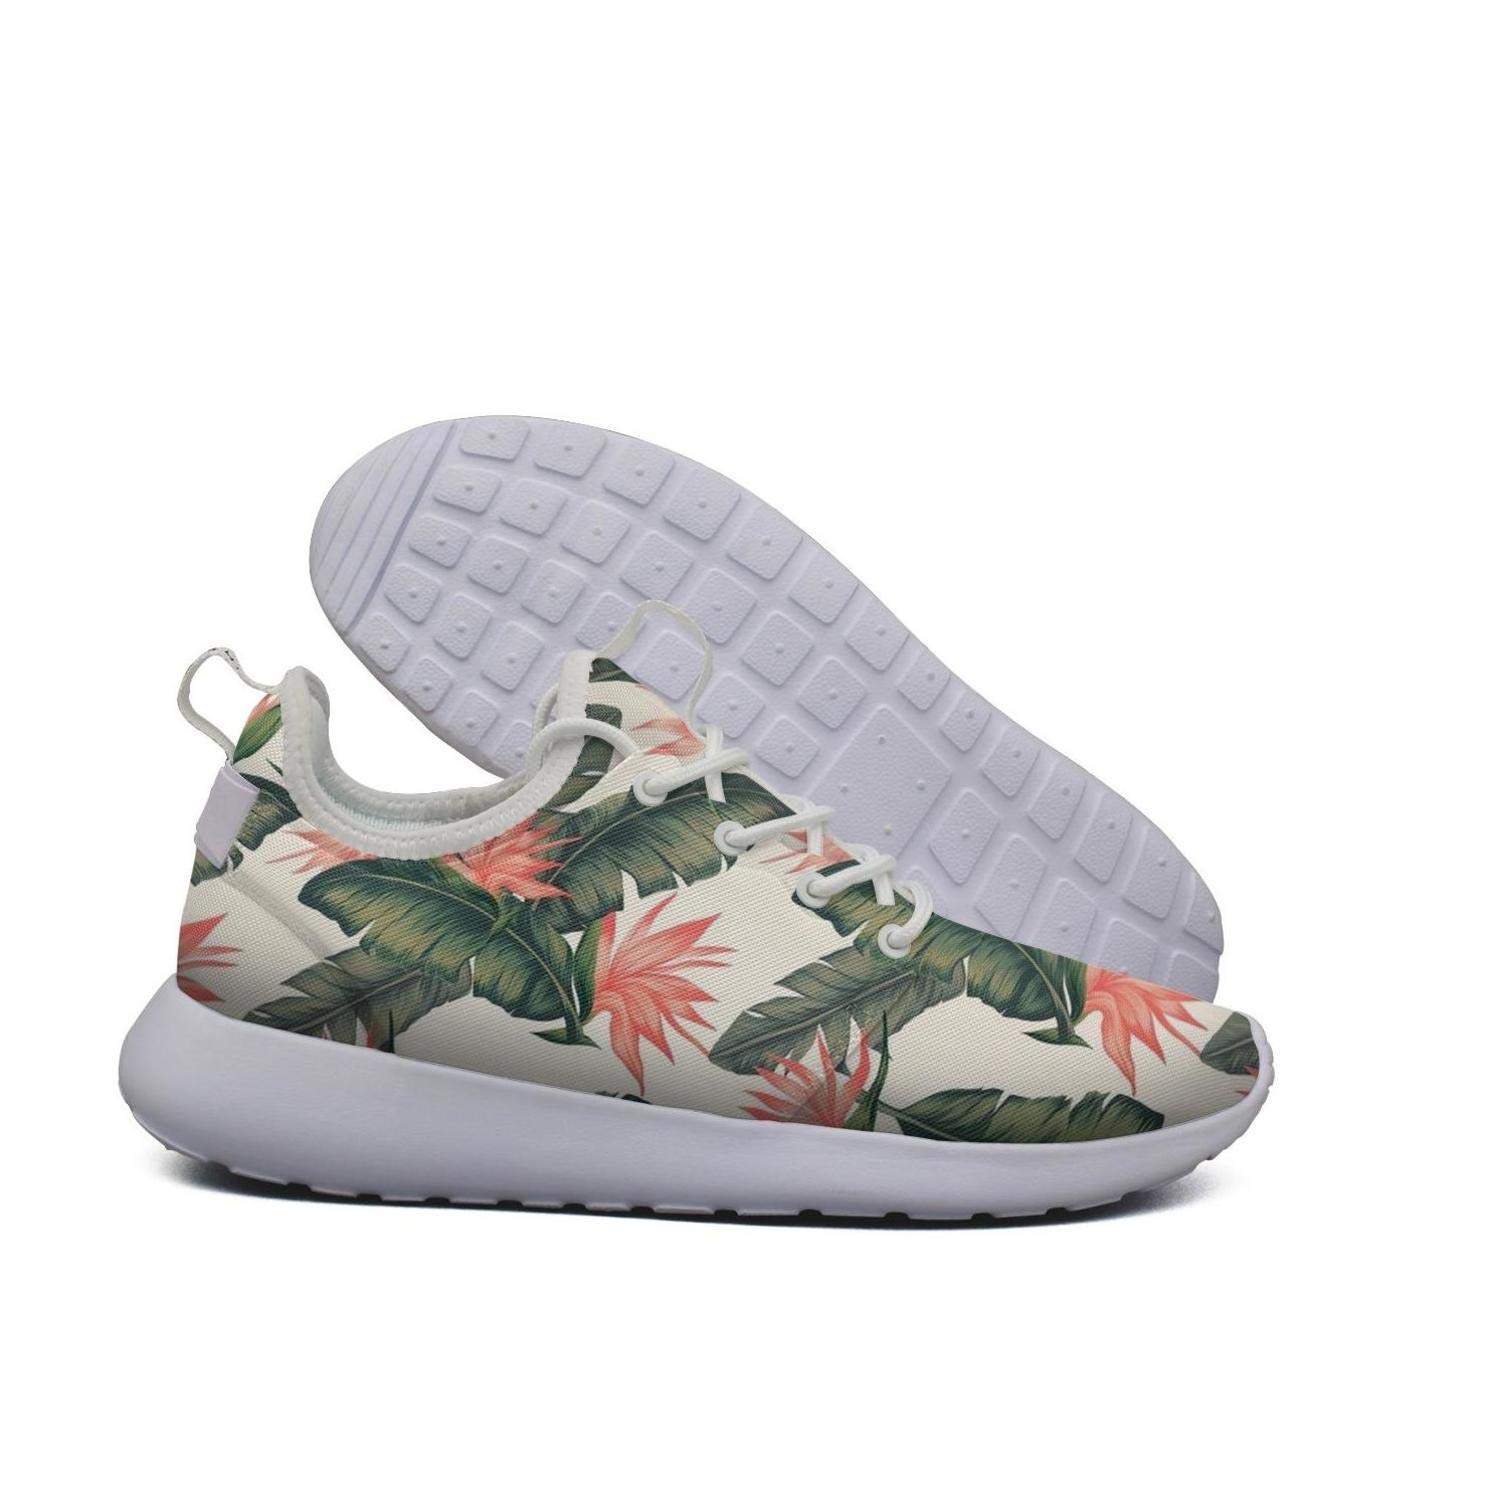 HAPPOSPORT Sunflower Flower Brown Cool Print Womens Sports Running Shoes Casual Lightweight Athletic Sneakers